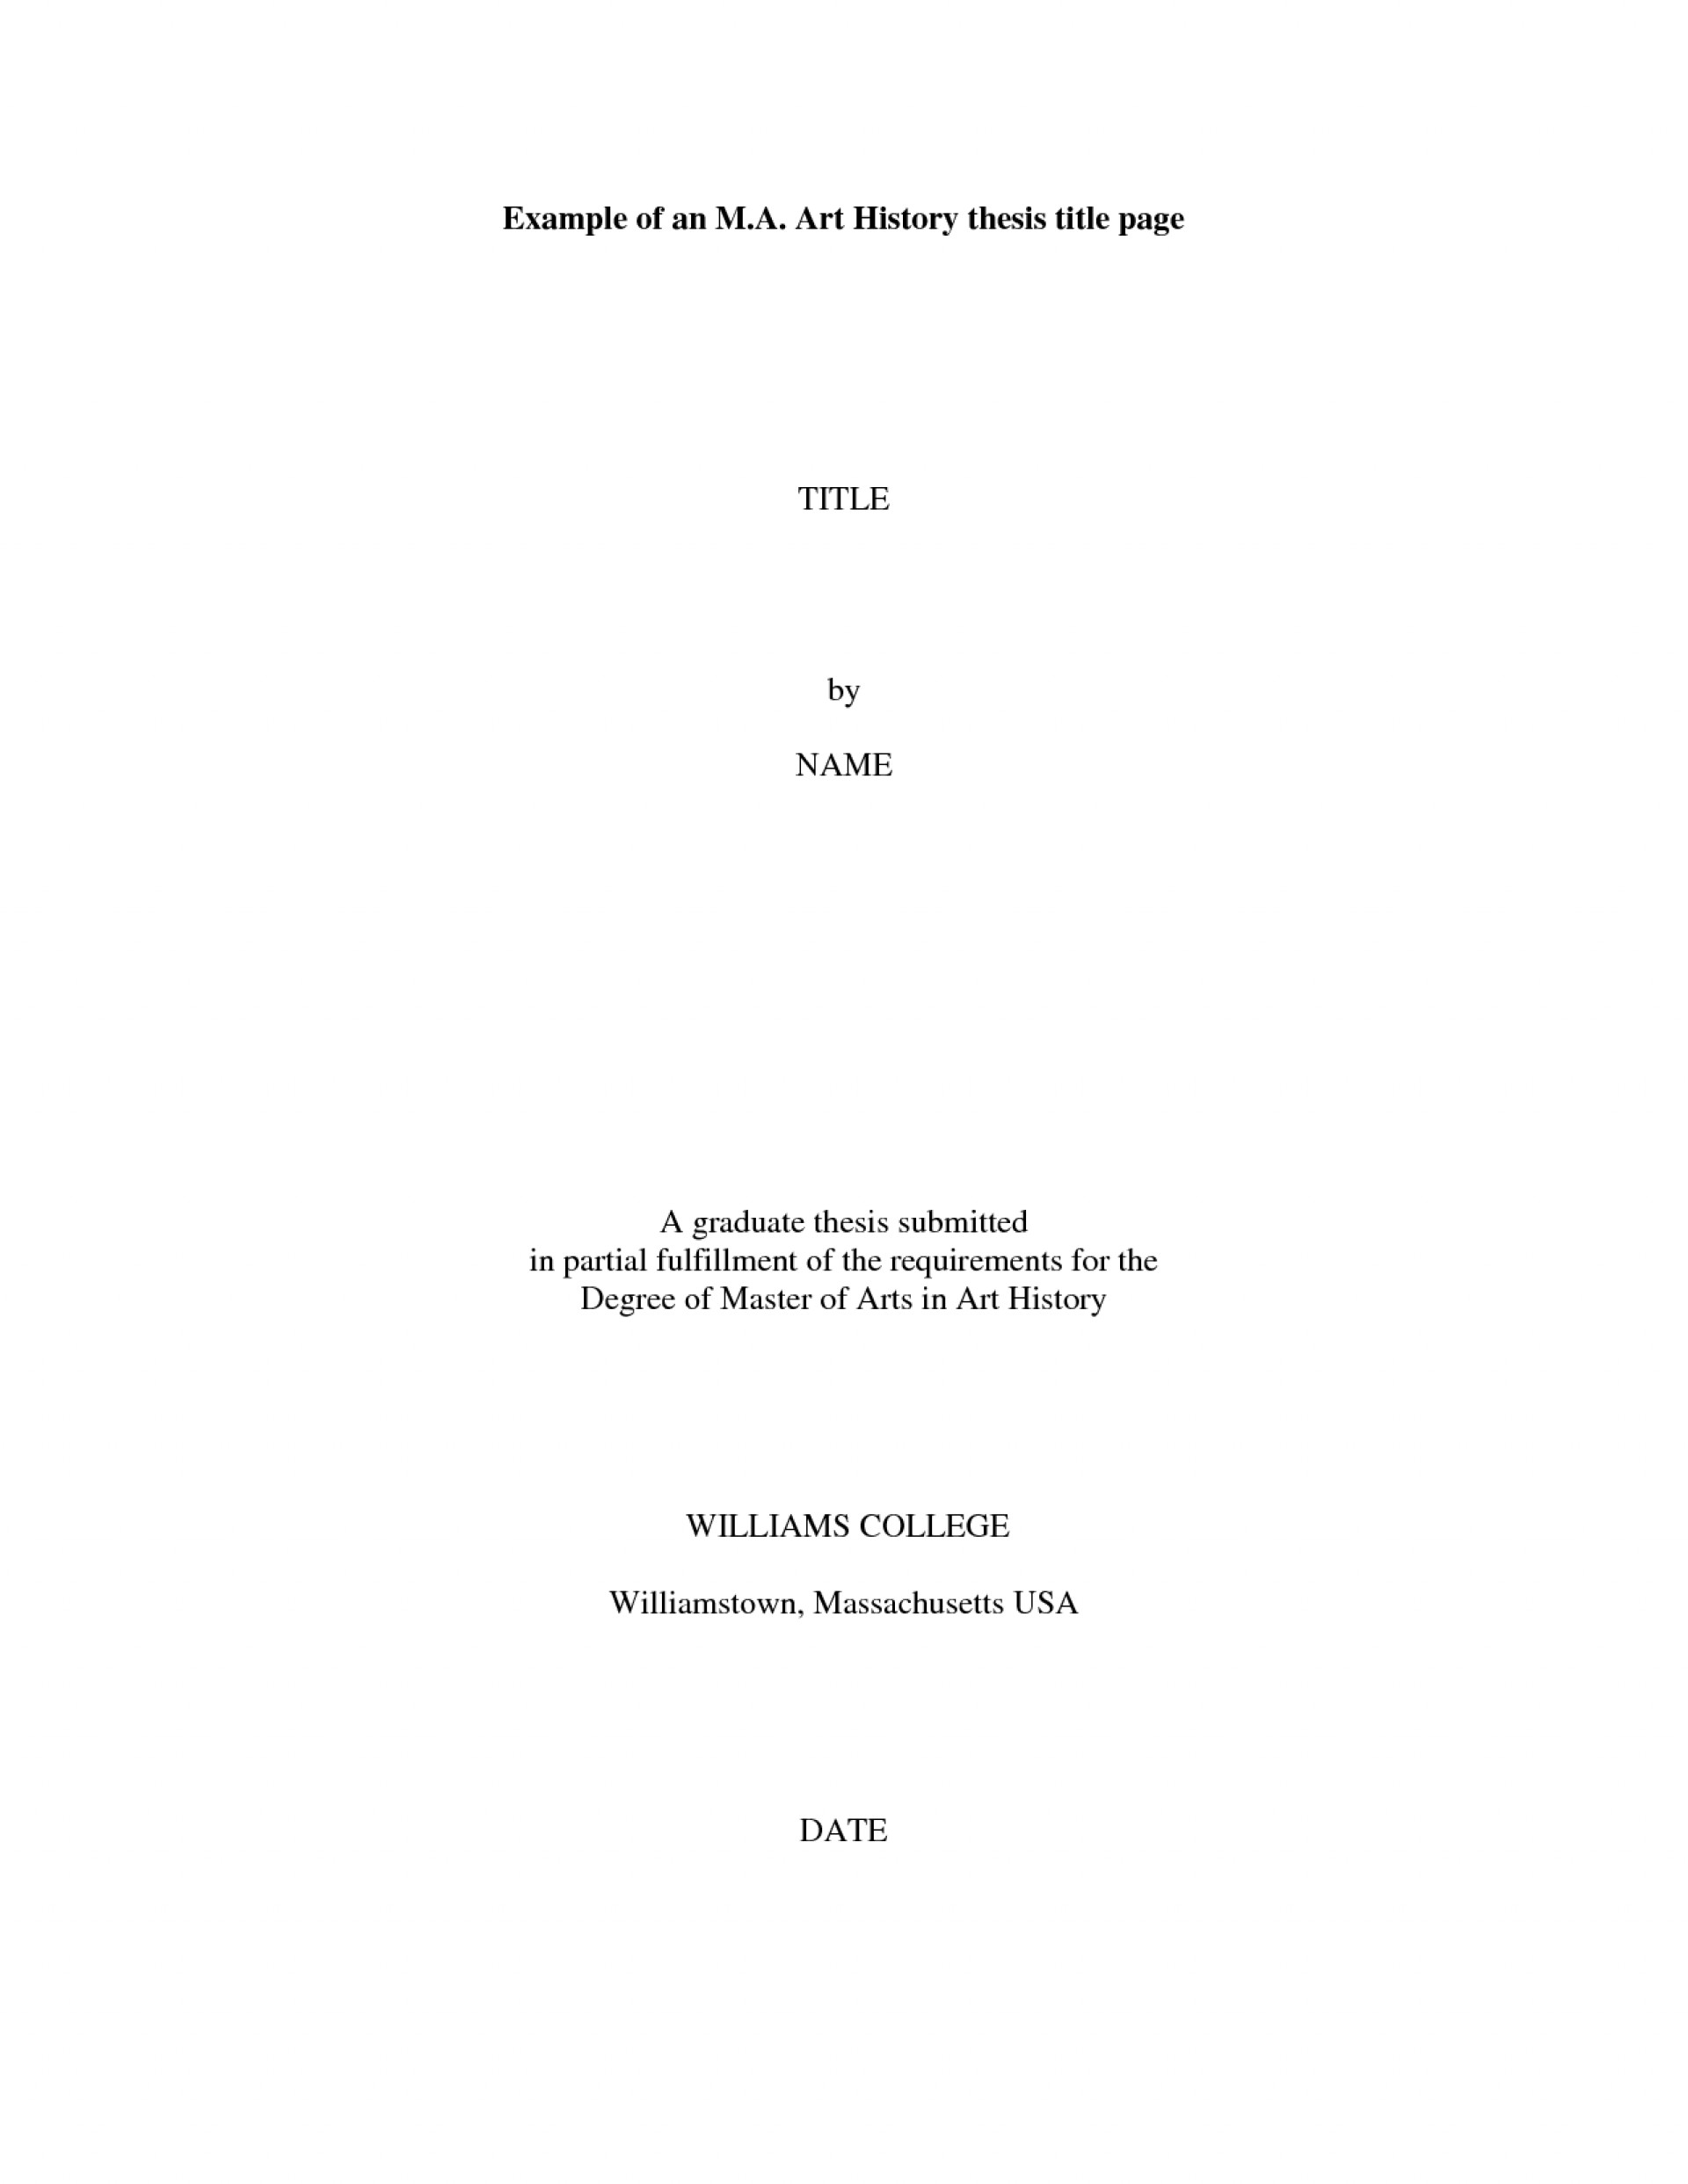 008 How To Do Cover Page For An Essay Hxxvirdwny Best A Make On Microsoft Word Chicago Works Cited In Mla Format 1920